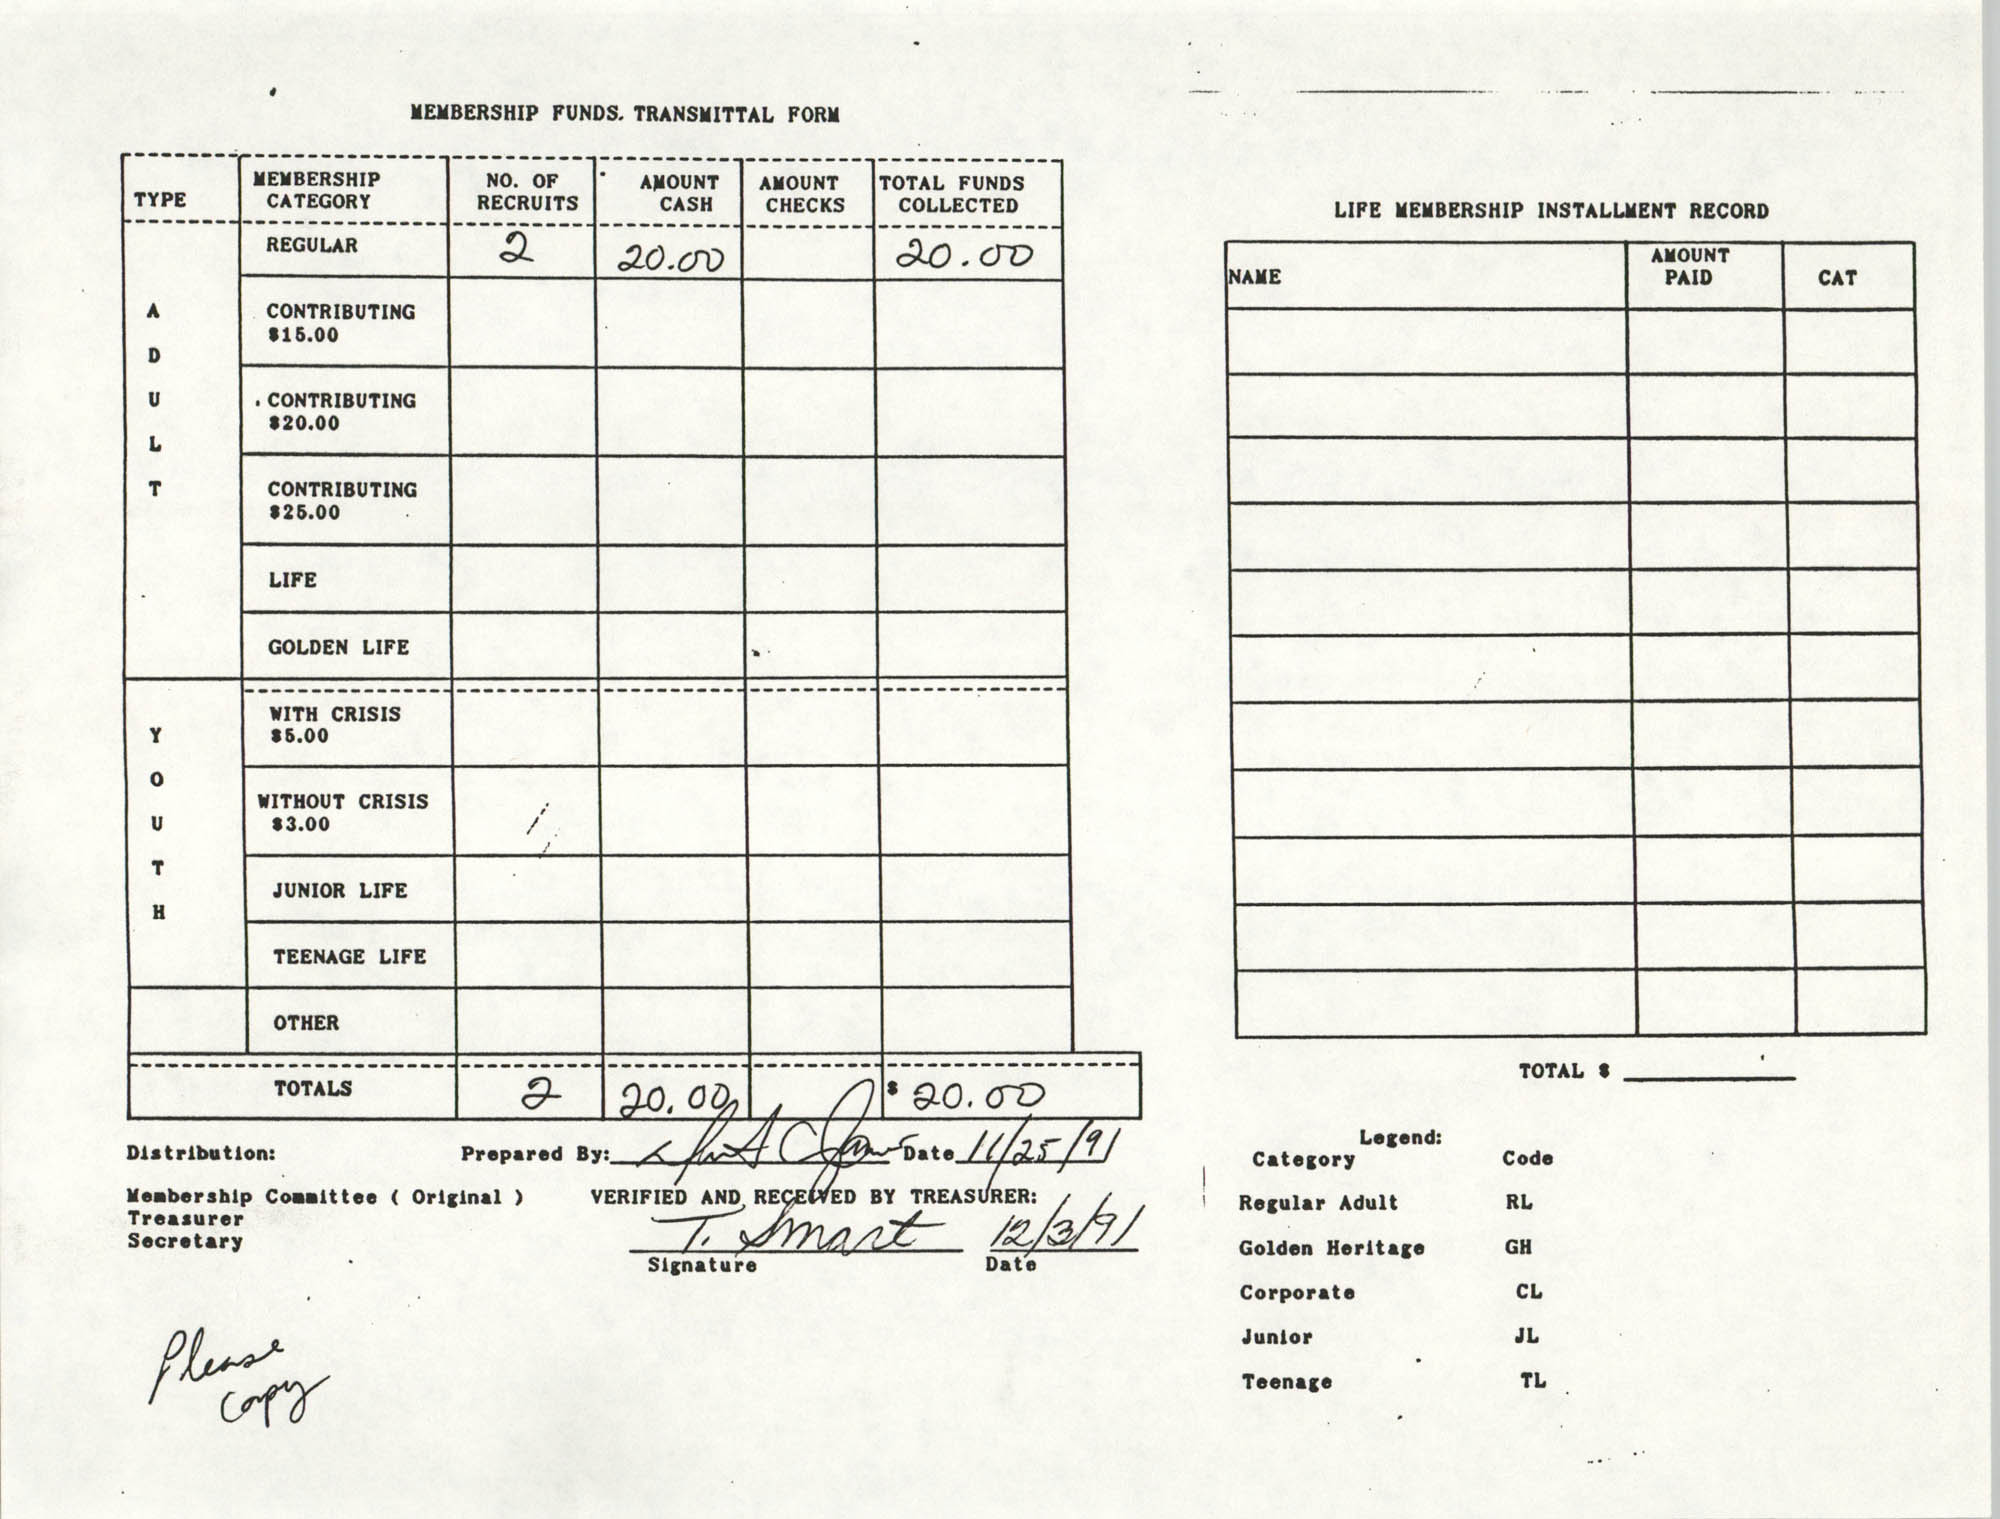 Charleston Branch of the NAACP Funds Transmittal Forms, November 1991, Page 4